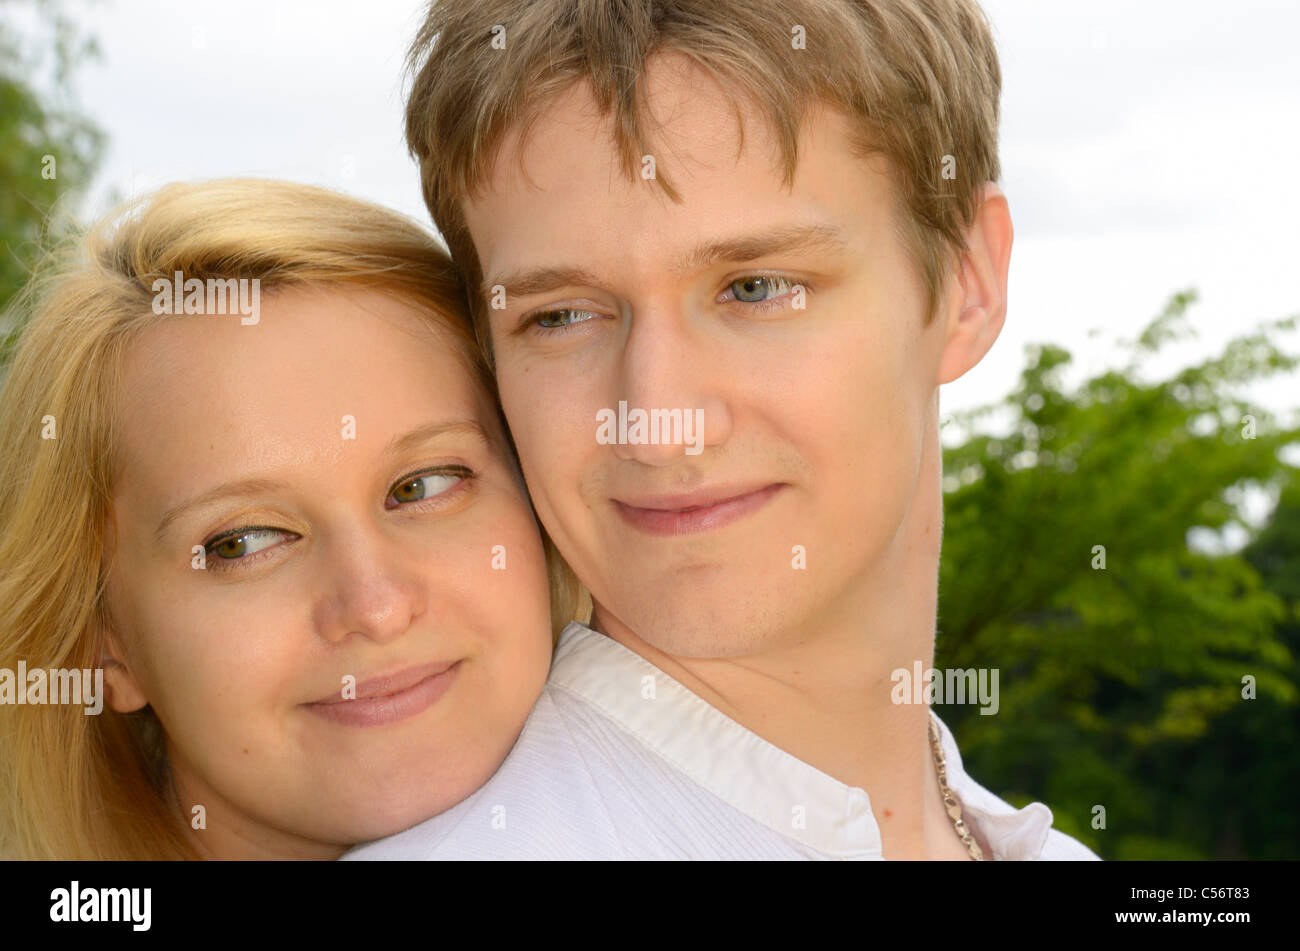 Faces of a happy blond couple fiances of white Eastern European descent - Stock Image